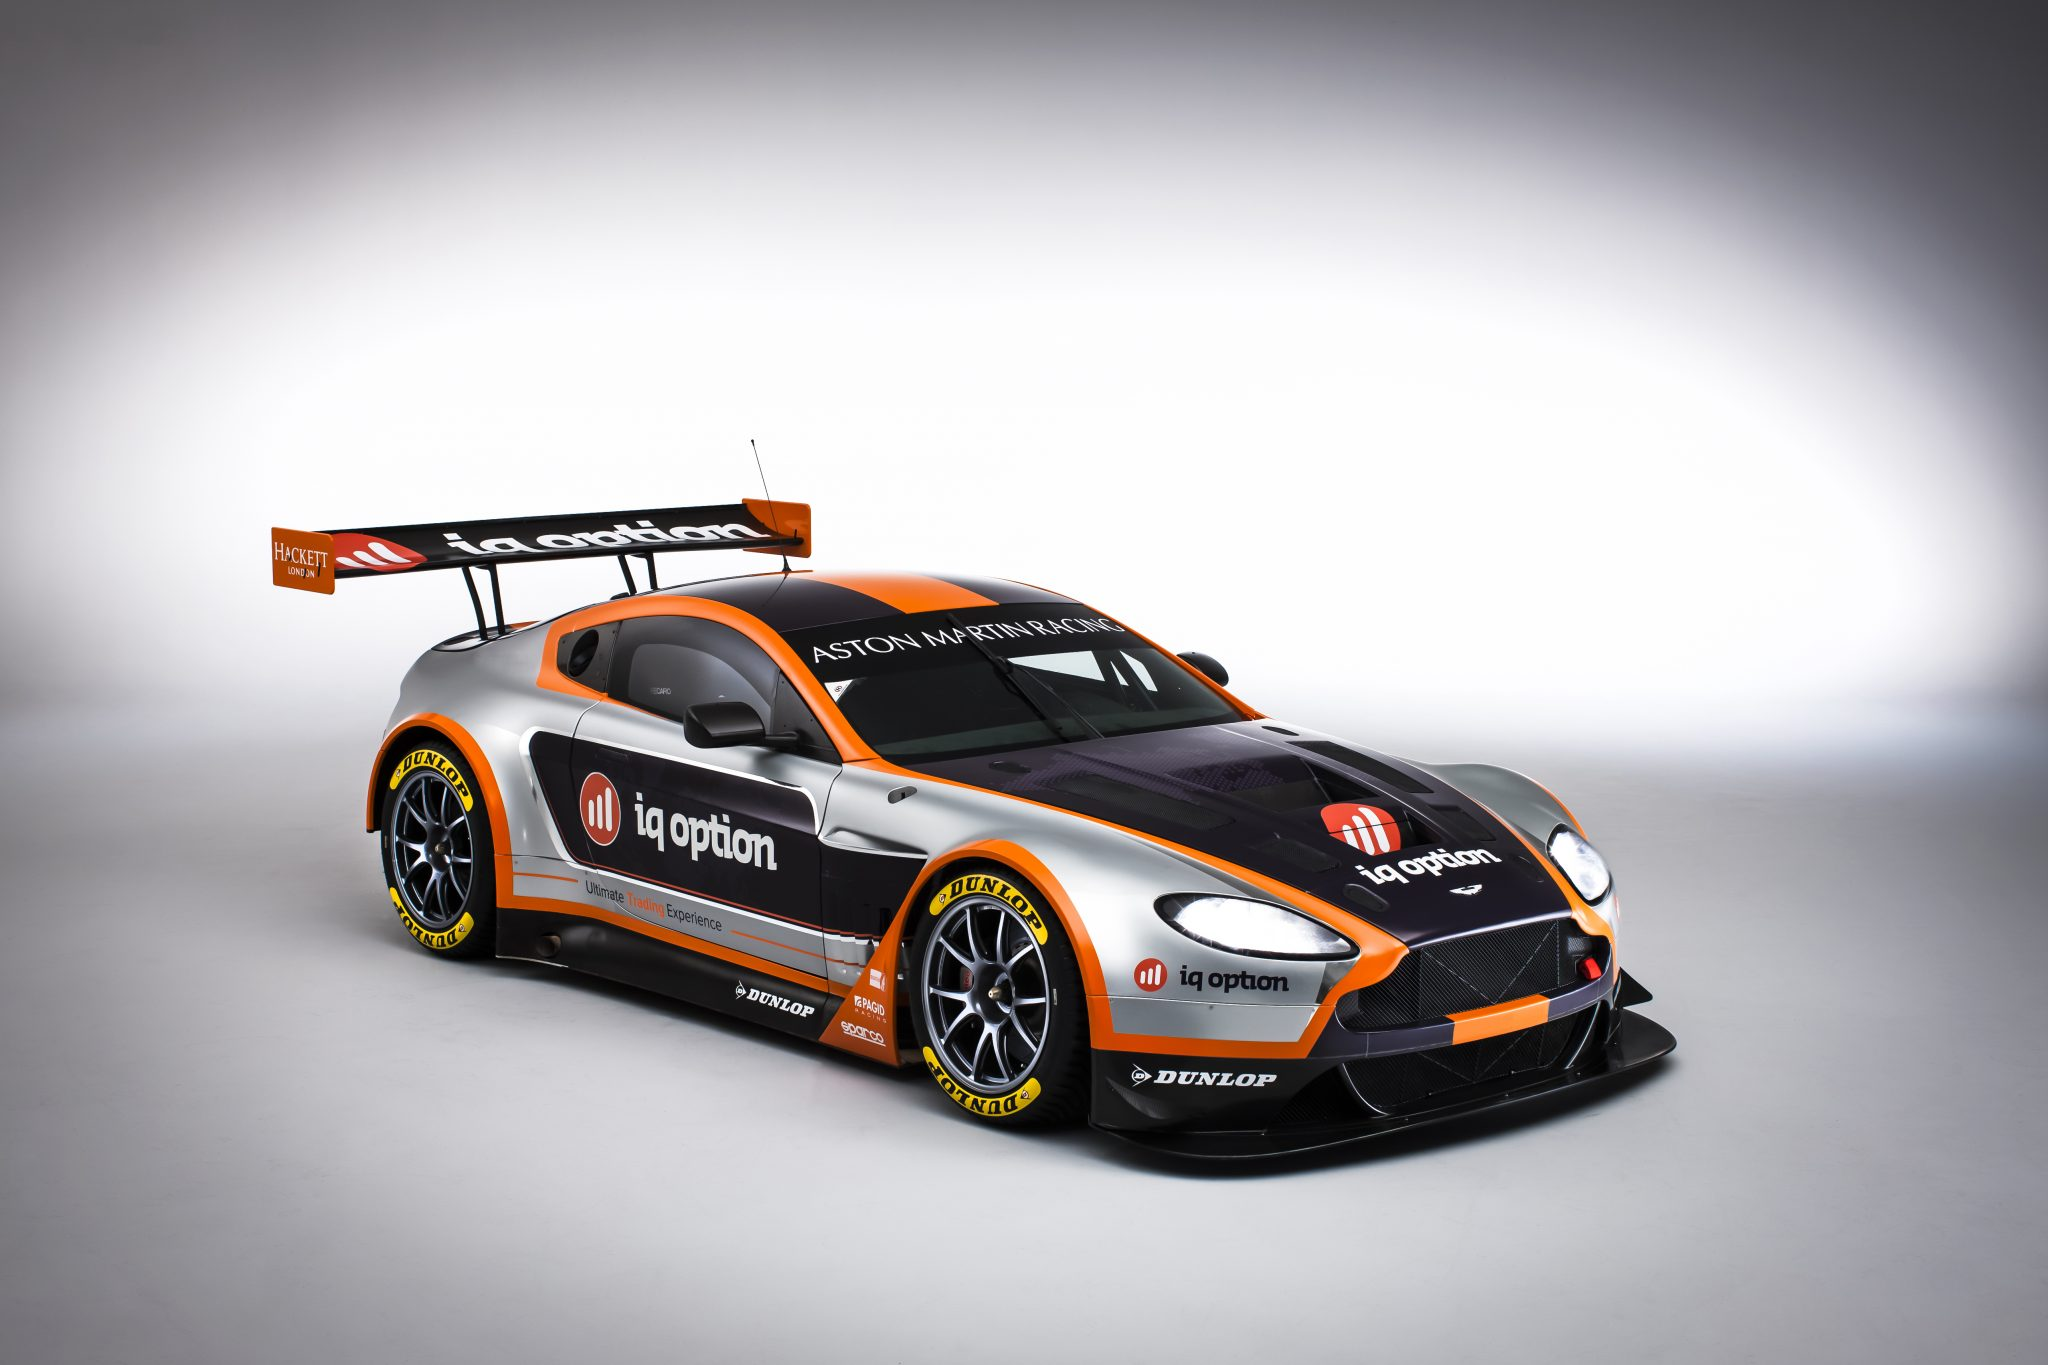 aston martin racing launches new gte challenger and 2016 title hopes bhp cars performance. Black Bedroom Furniture Sets. Home Design Ideas